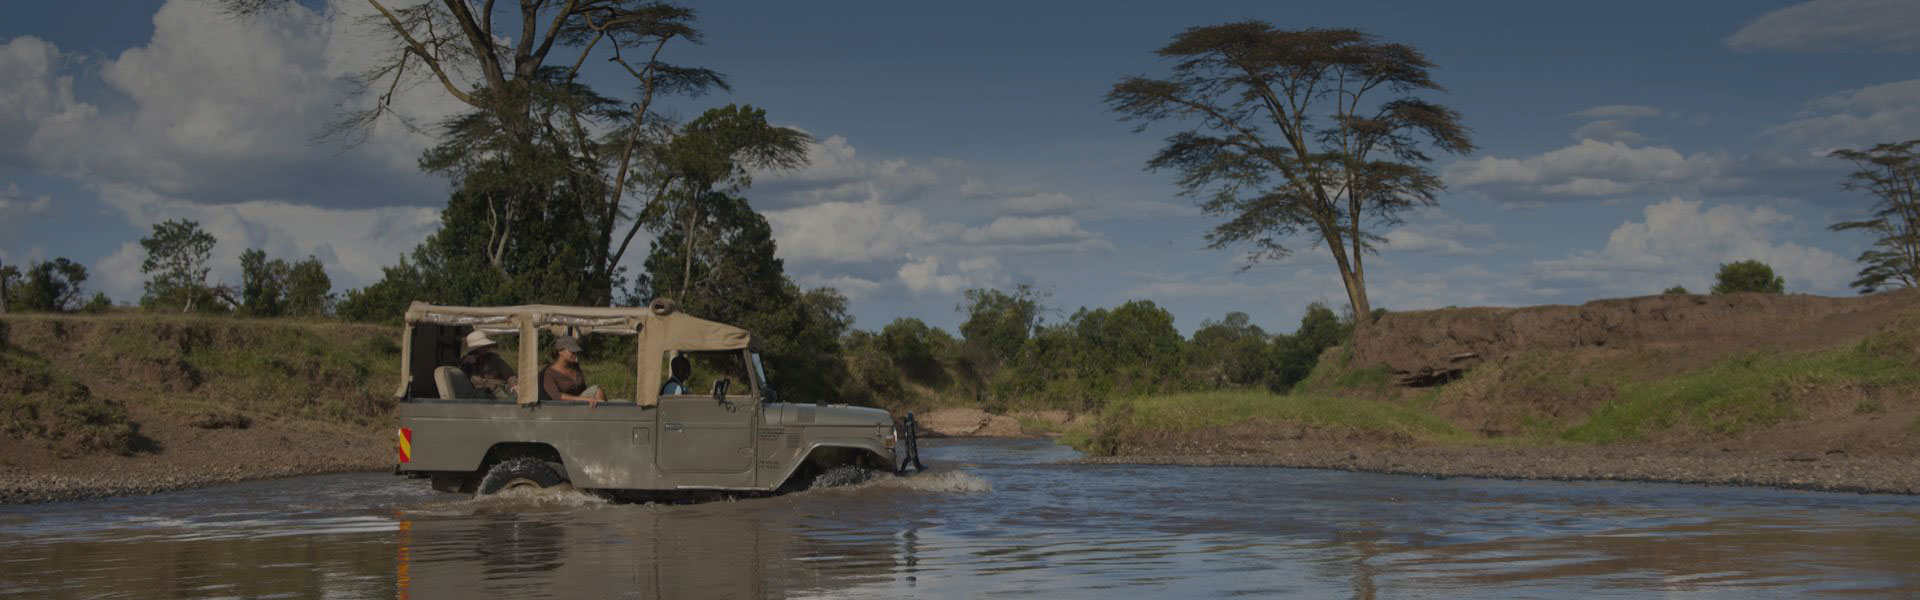 Explore the beauty of Ol Pejeta Conservancy with Asilia